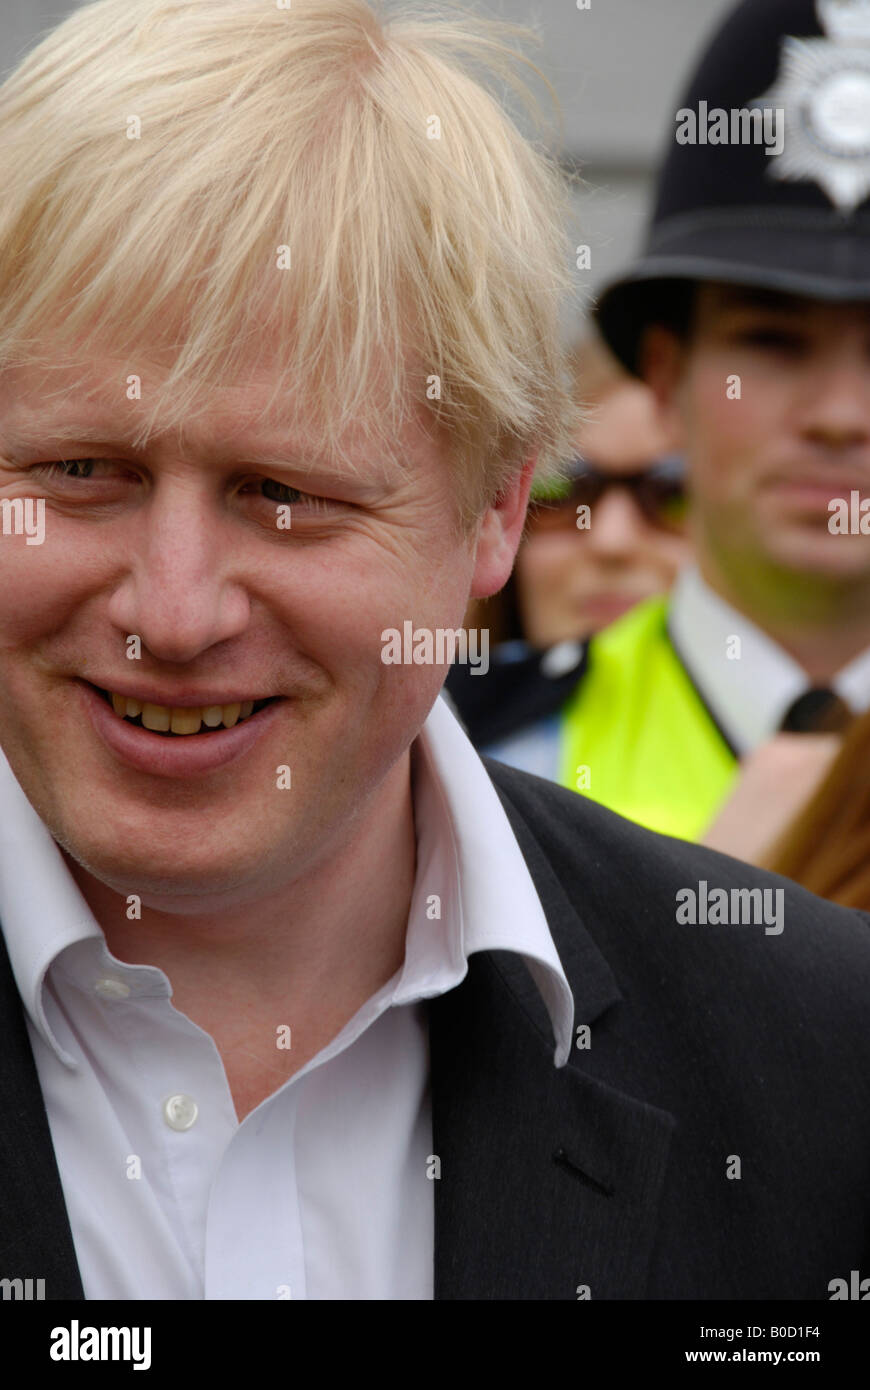 Mayor of London Boris Johnson with police constable in the background First day as mayor 5th April 2008 - Stock Image